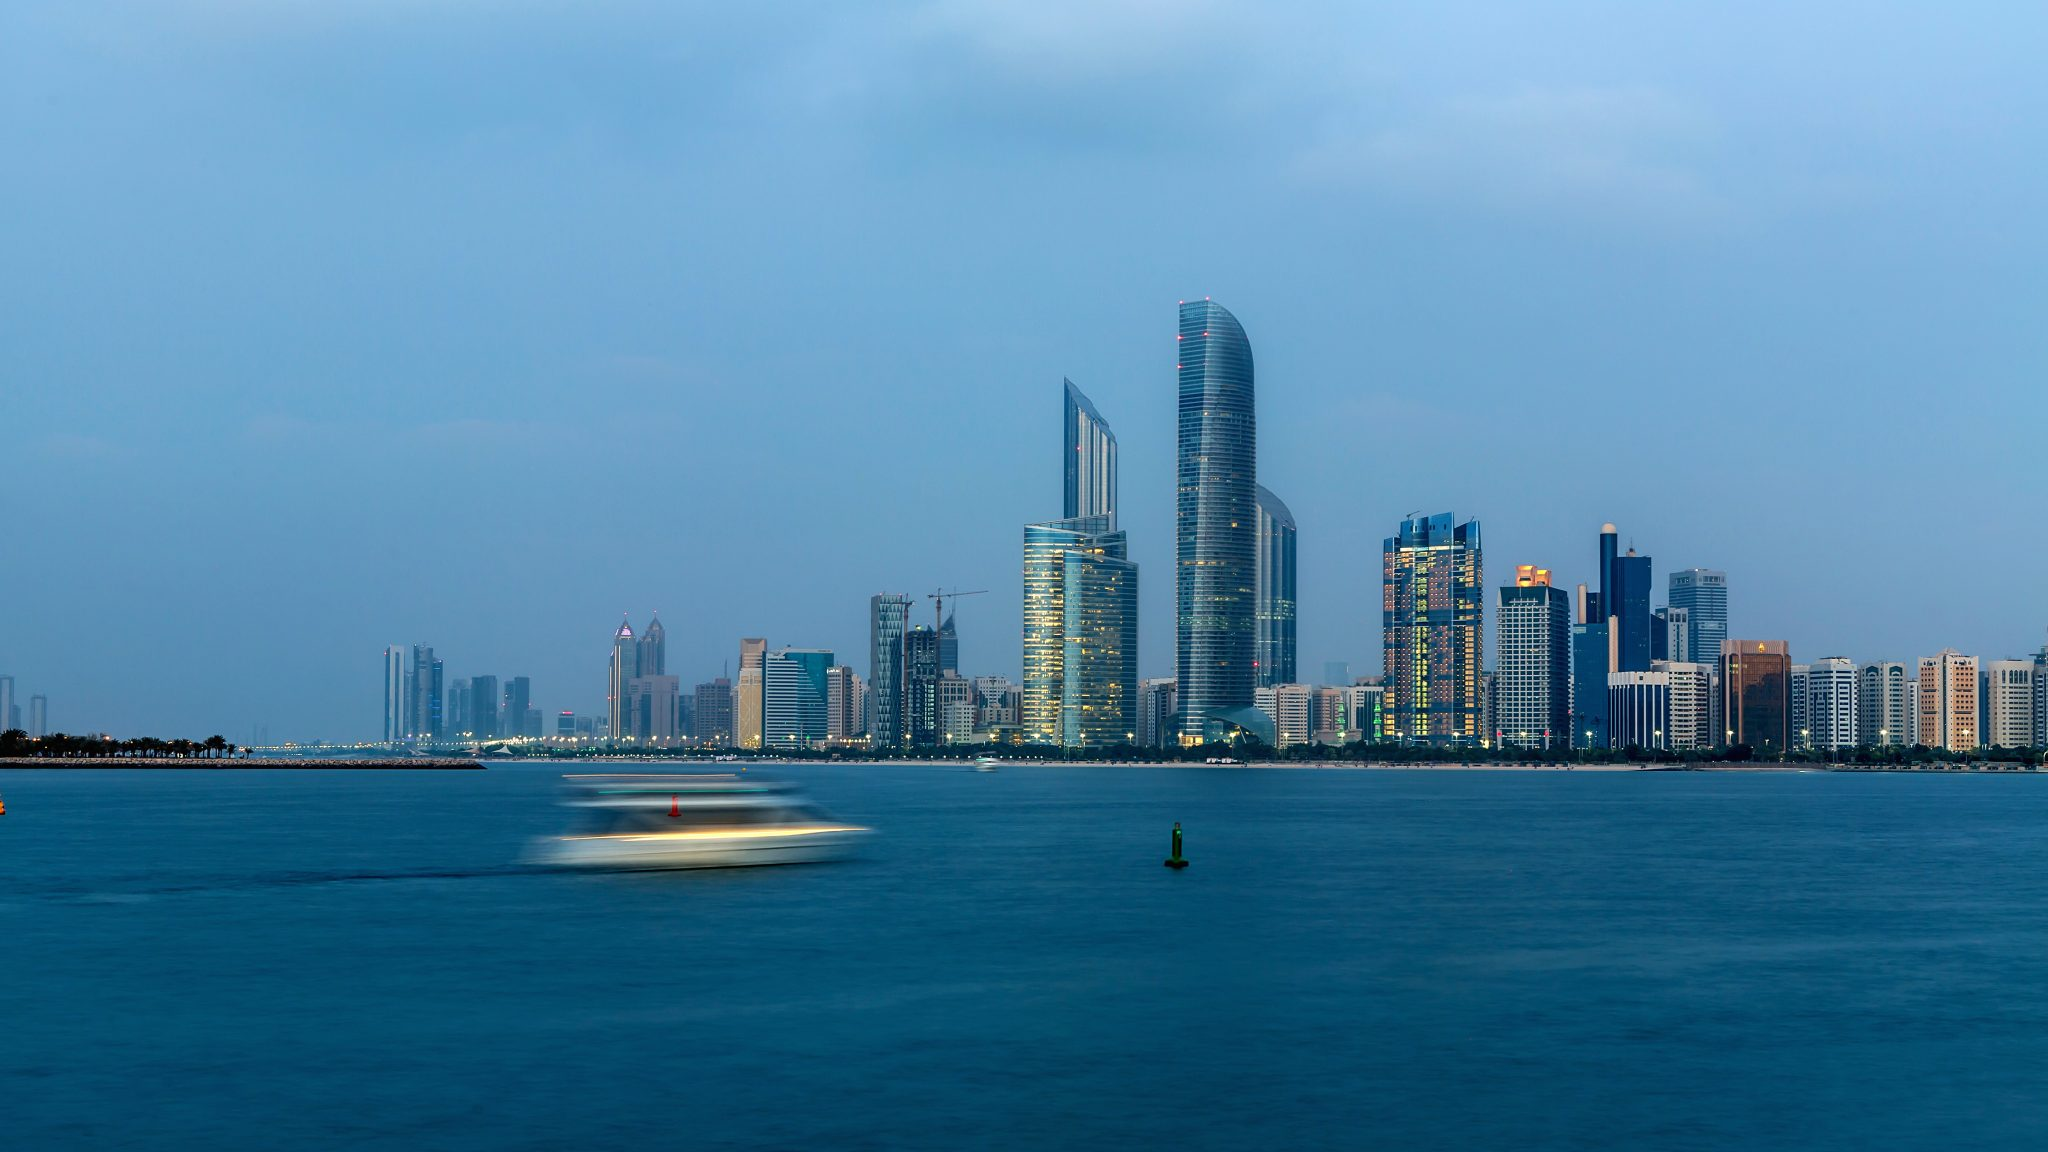 Abu Dhabi Day Trip from Dubai - All Questions Answered